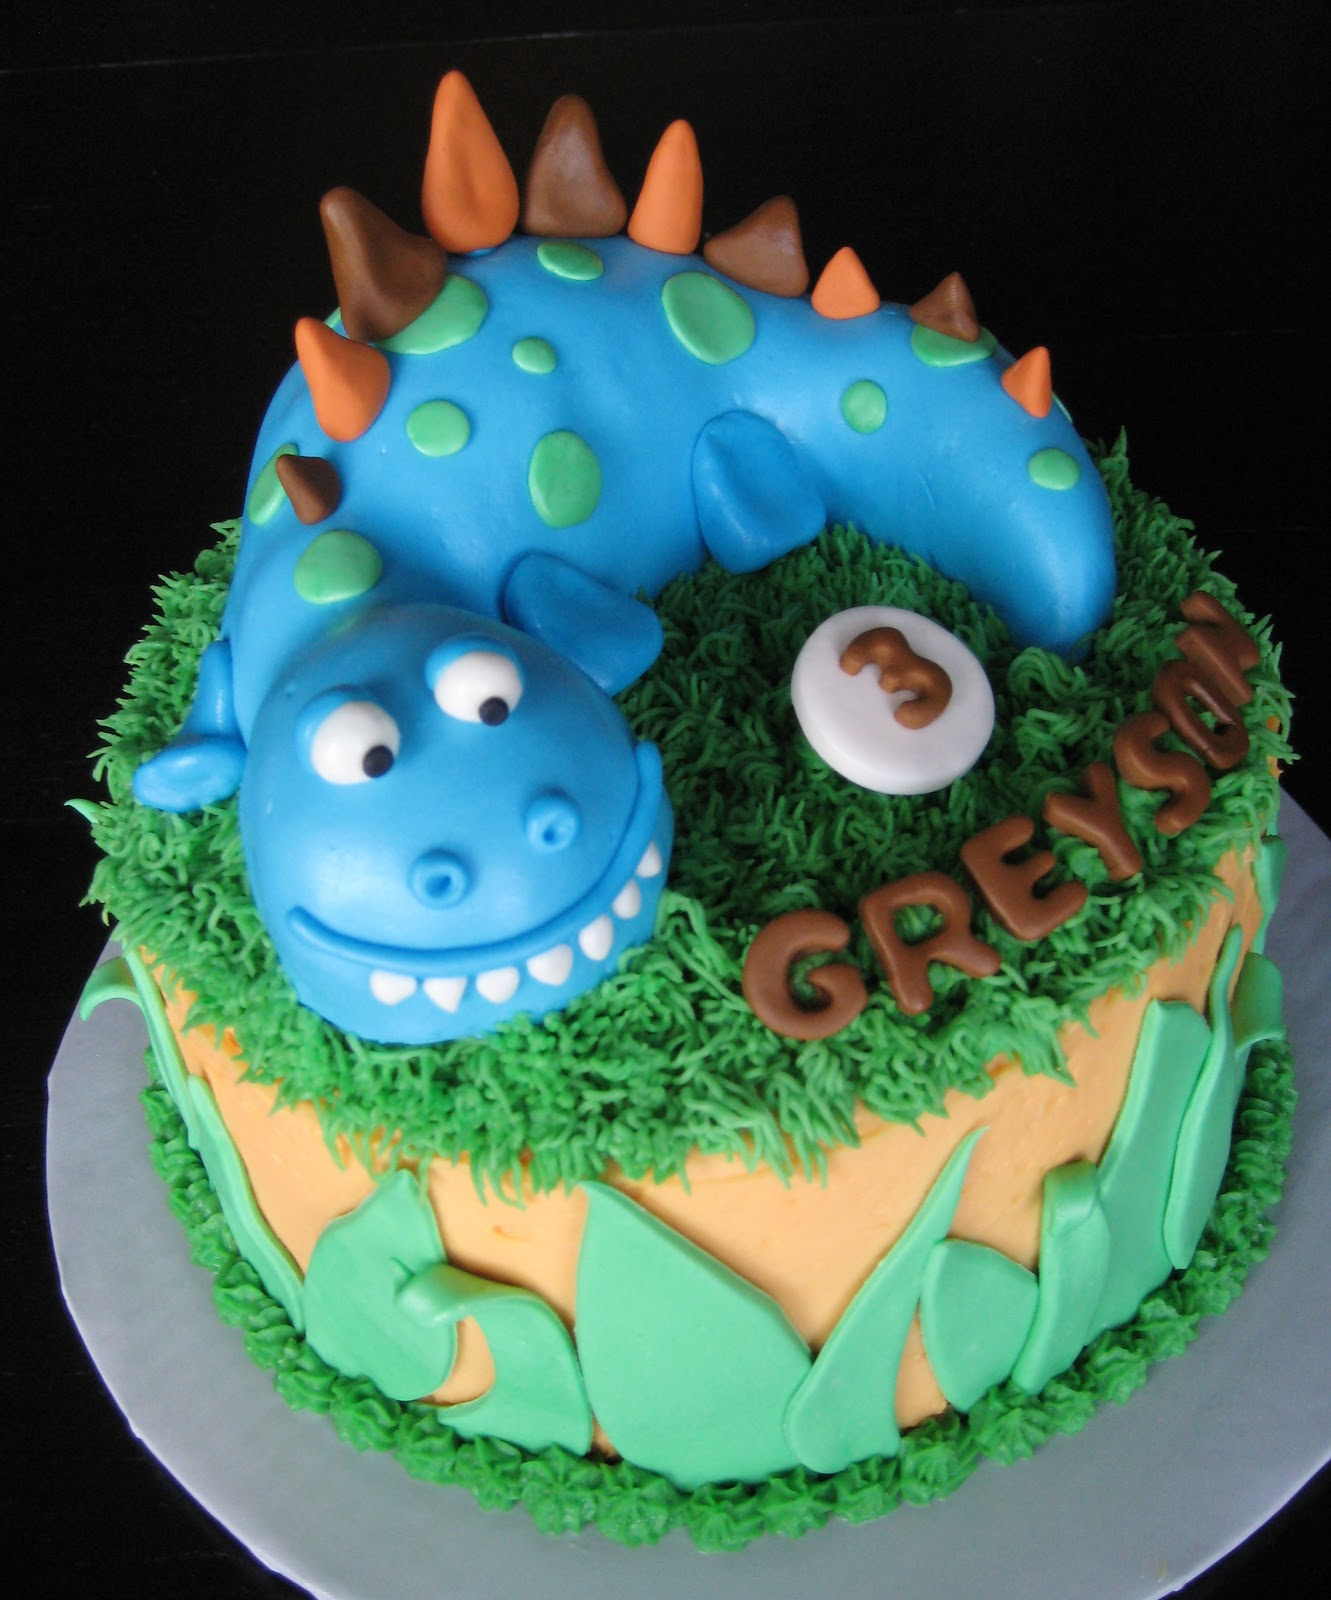 Dinosaur Cake Decorations Tesco : Home Depot New Day Shed Plans Cerita Aku,Depot.Home Plans ...